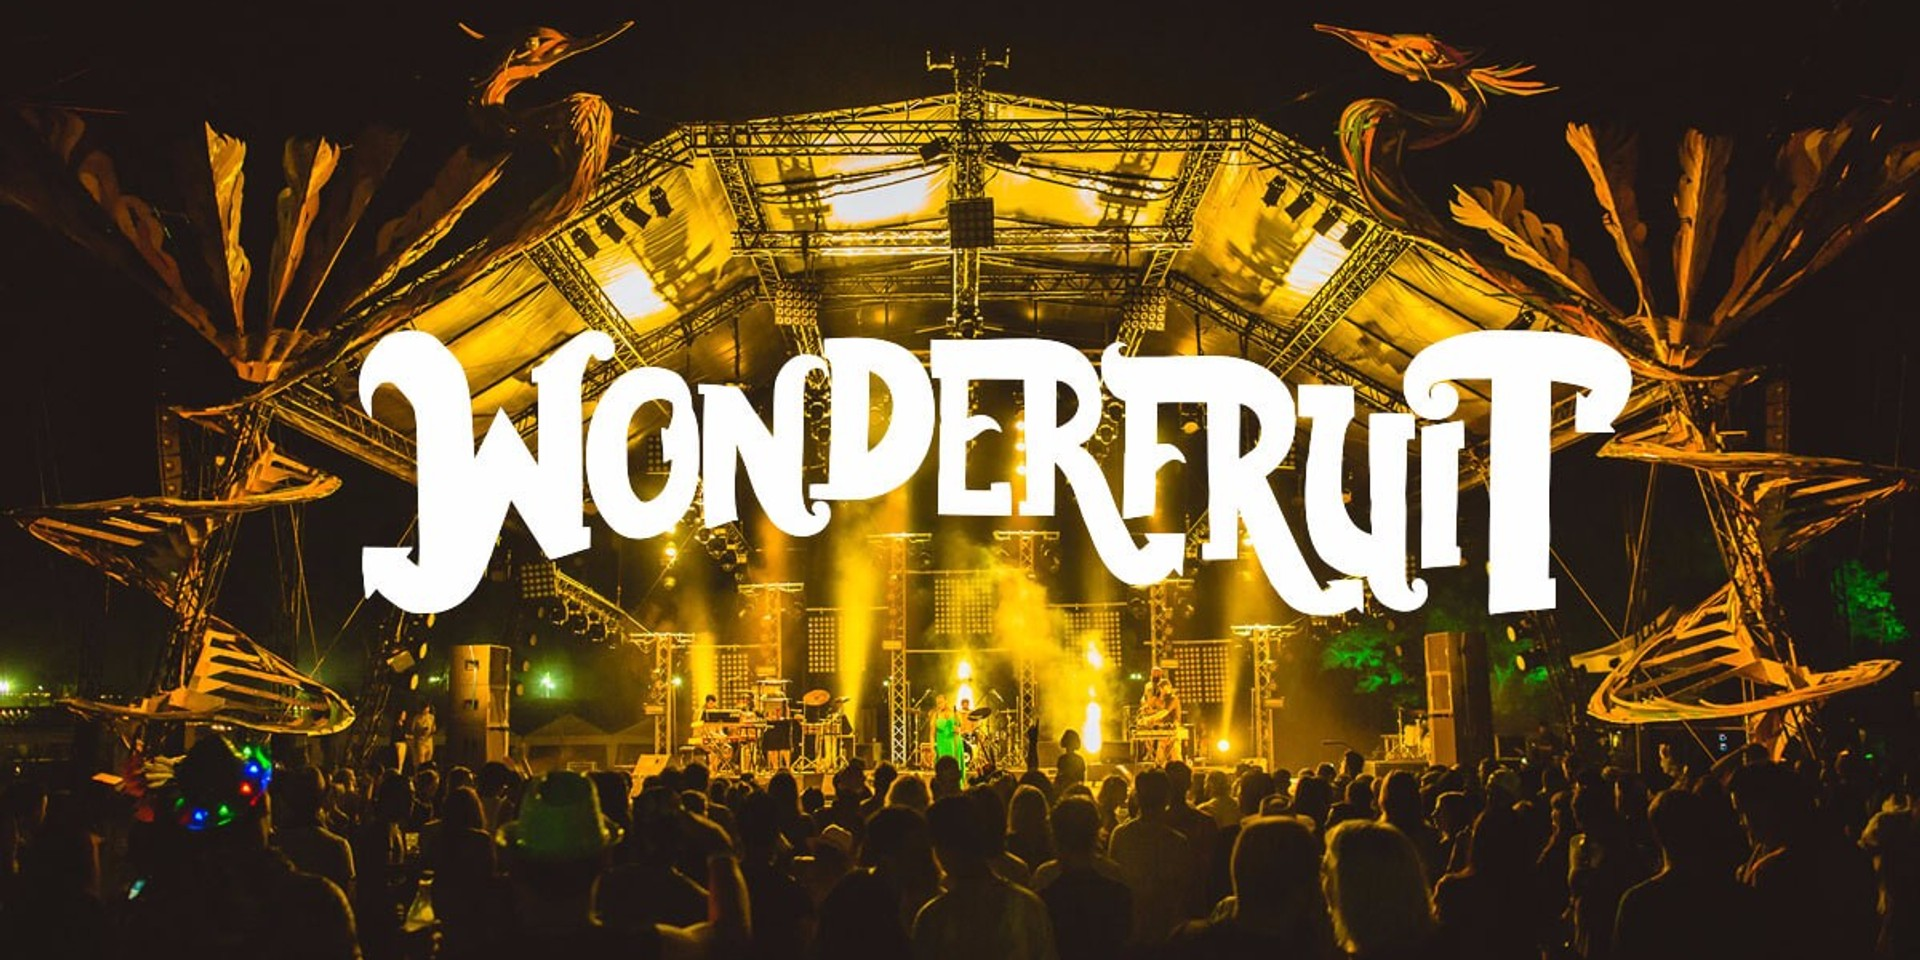 The five acts you can't miss at Wonderfruit, according to Gig Life Asia's Priya Dewan